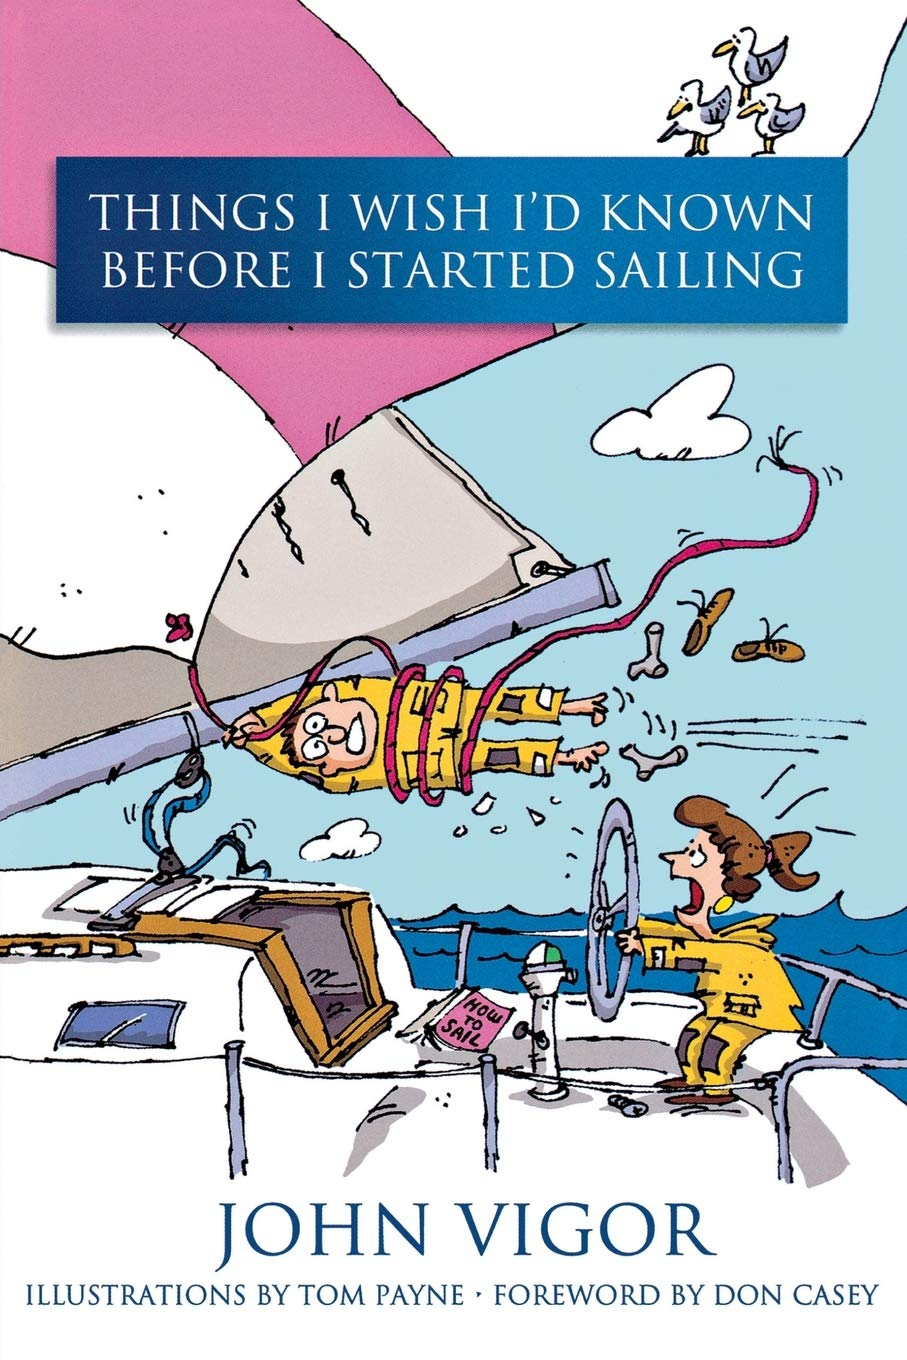 Image OfThings I Wish I'd Known Before I Started Sailing